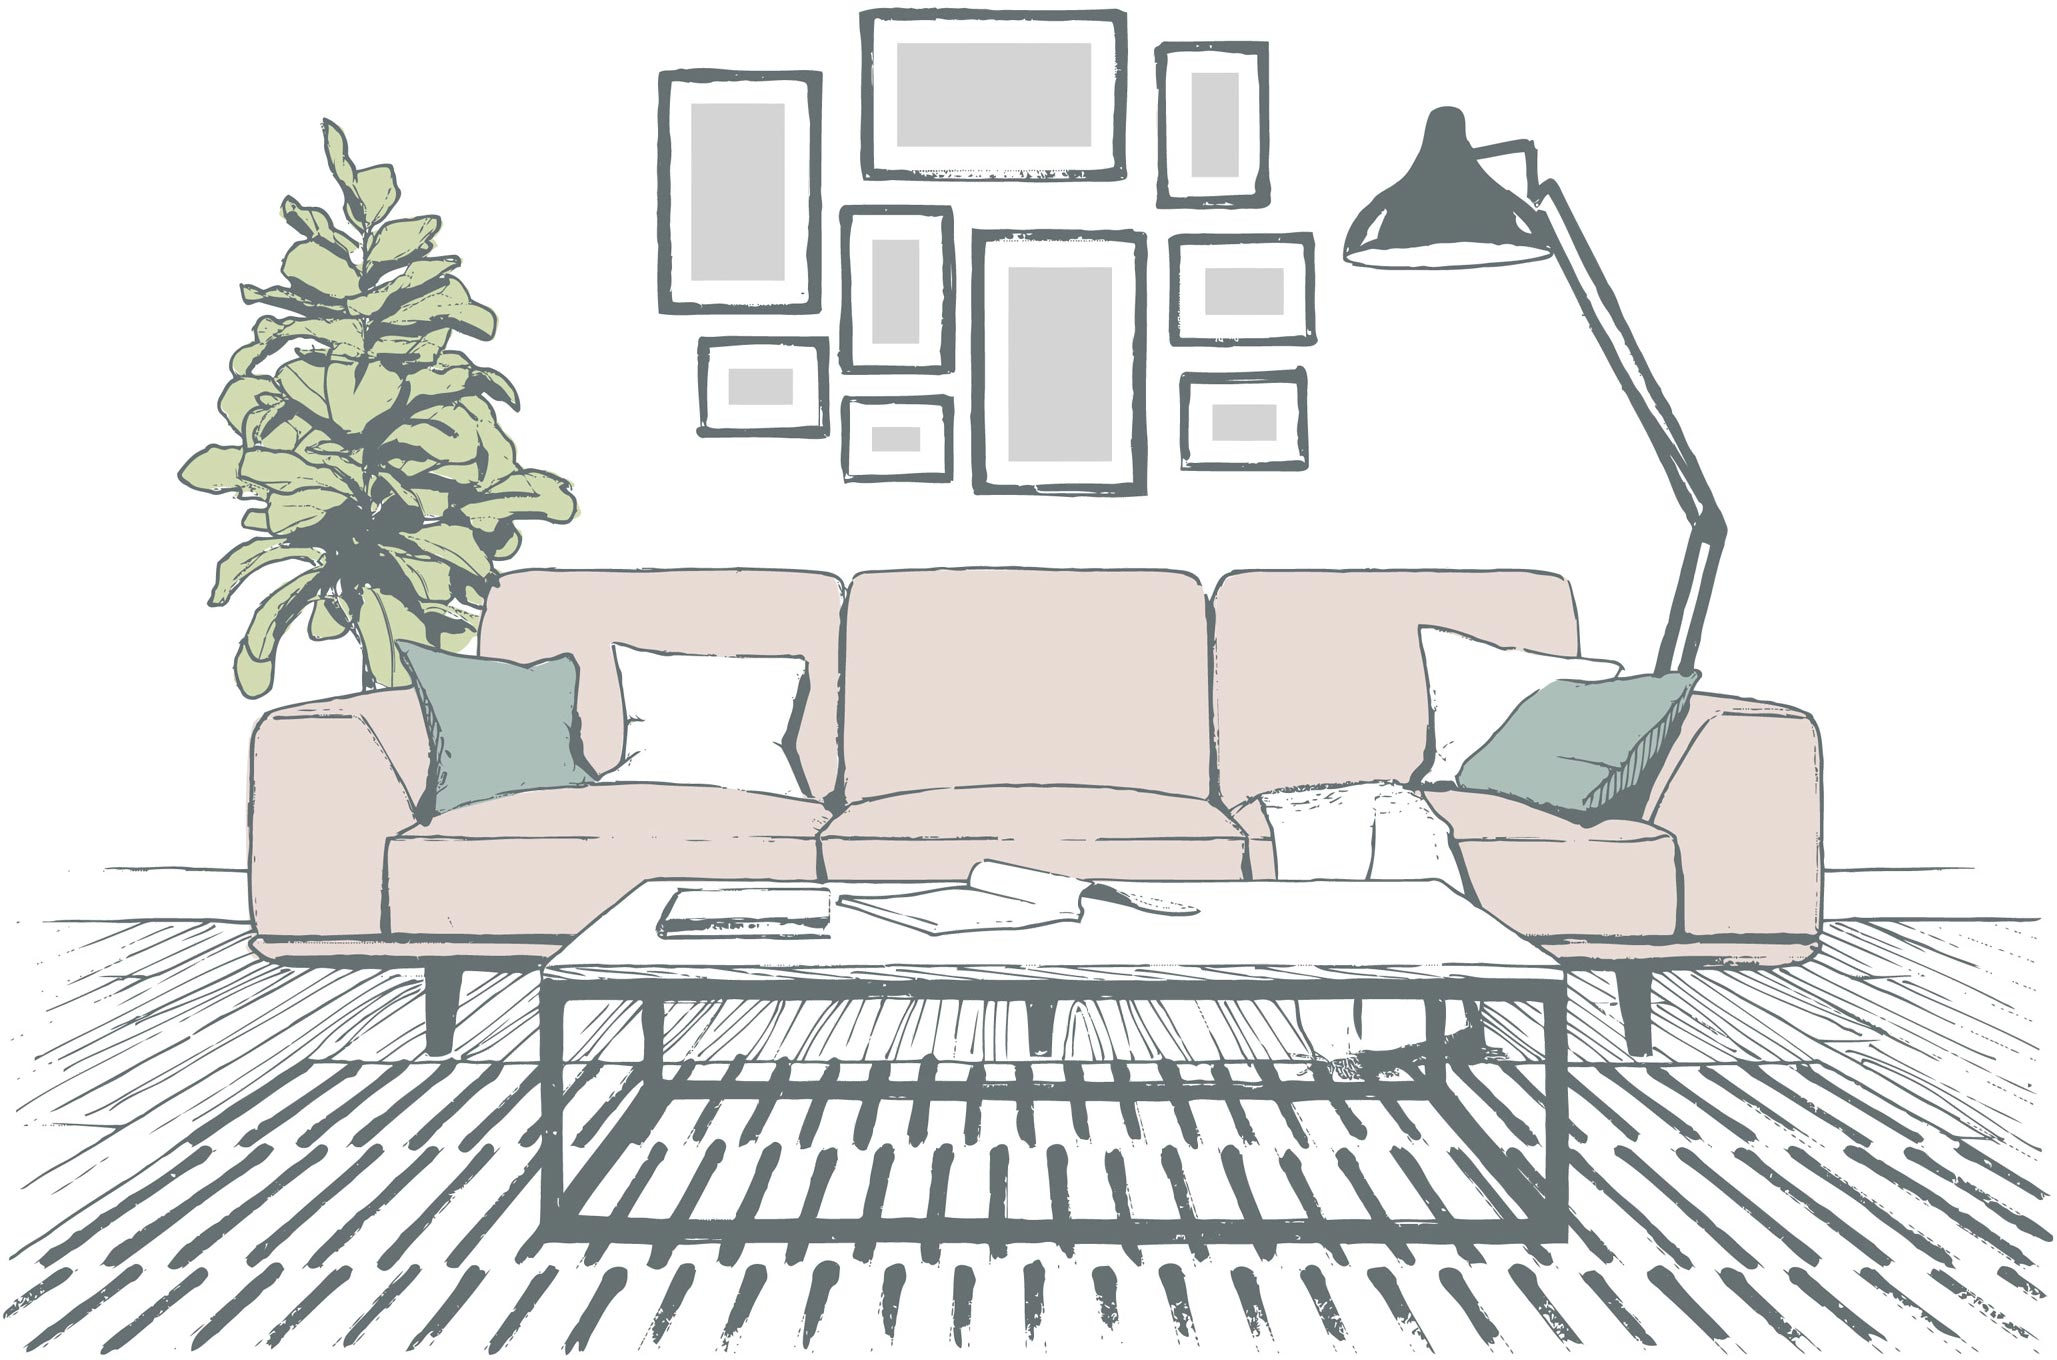 Illustration of a sofa surrounded by home items